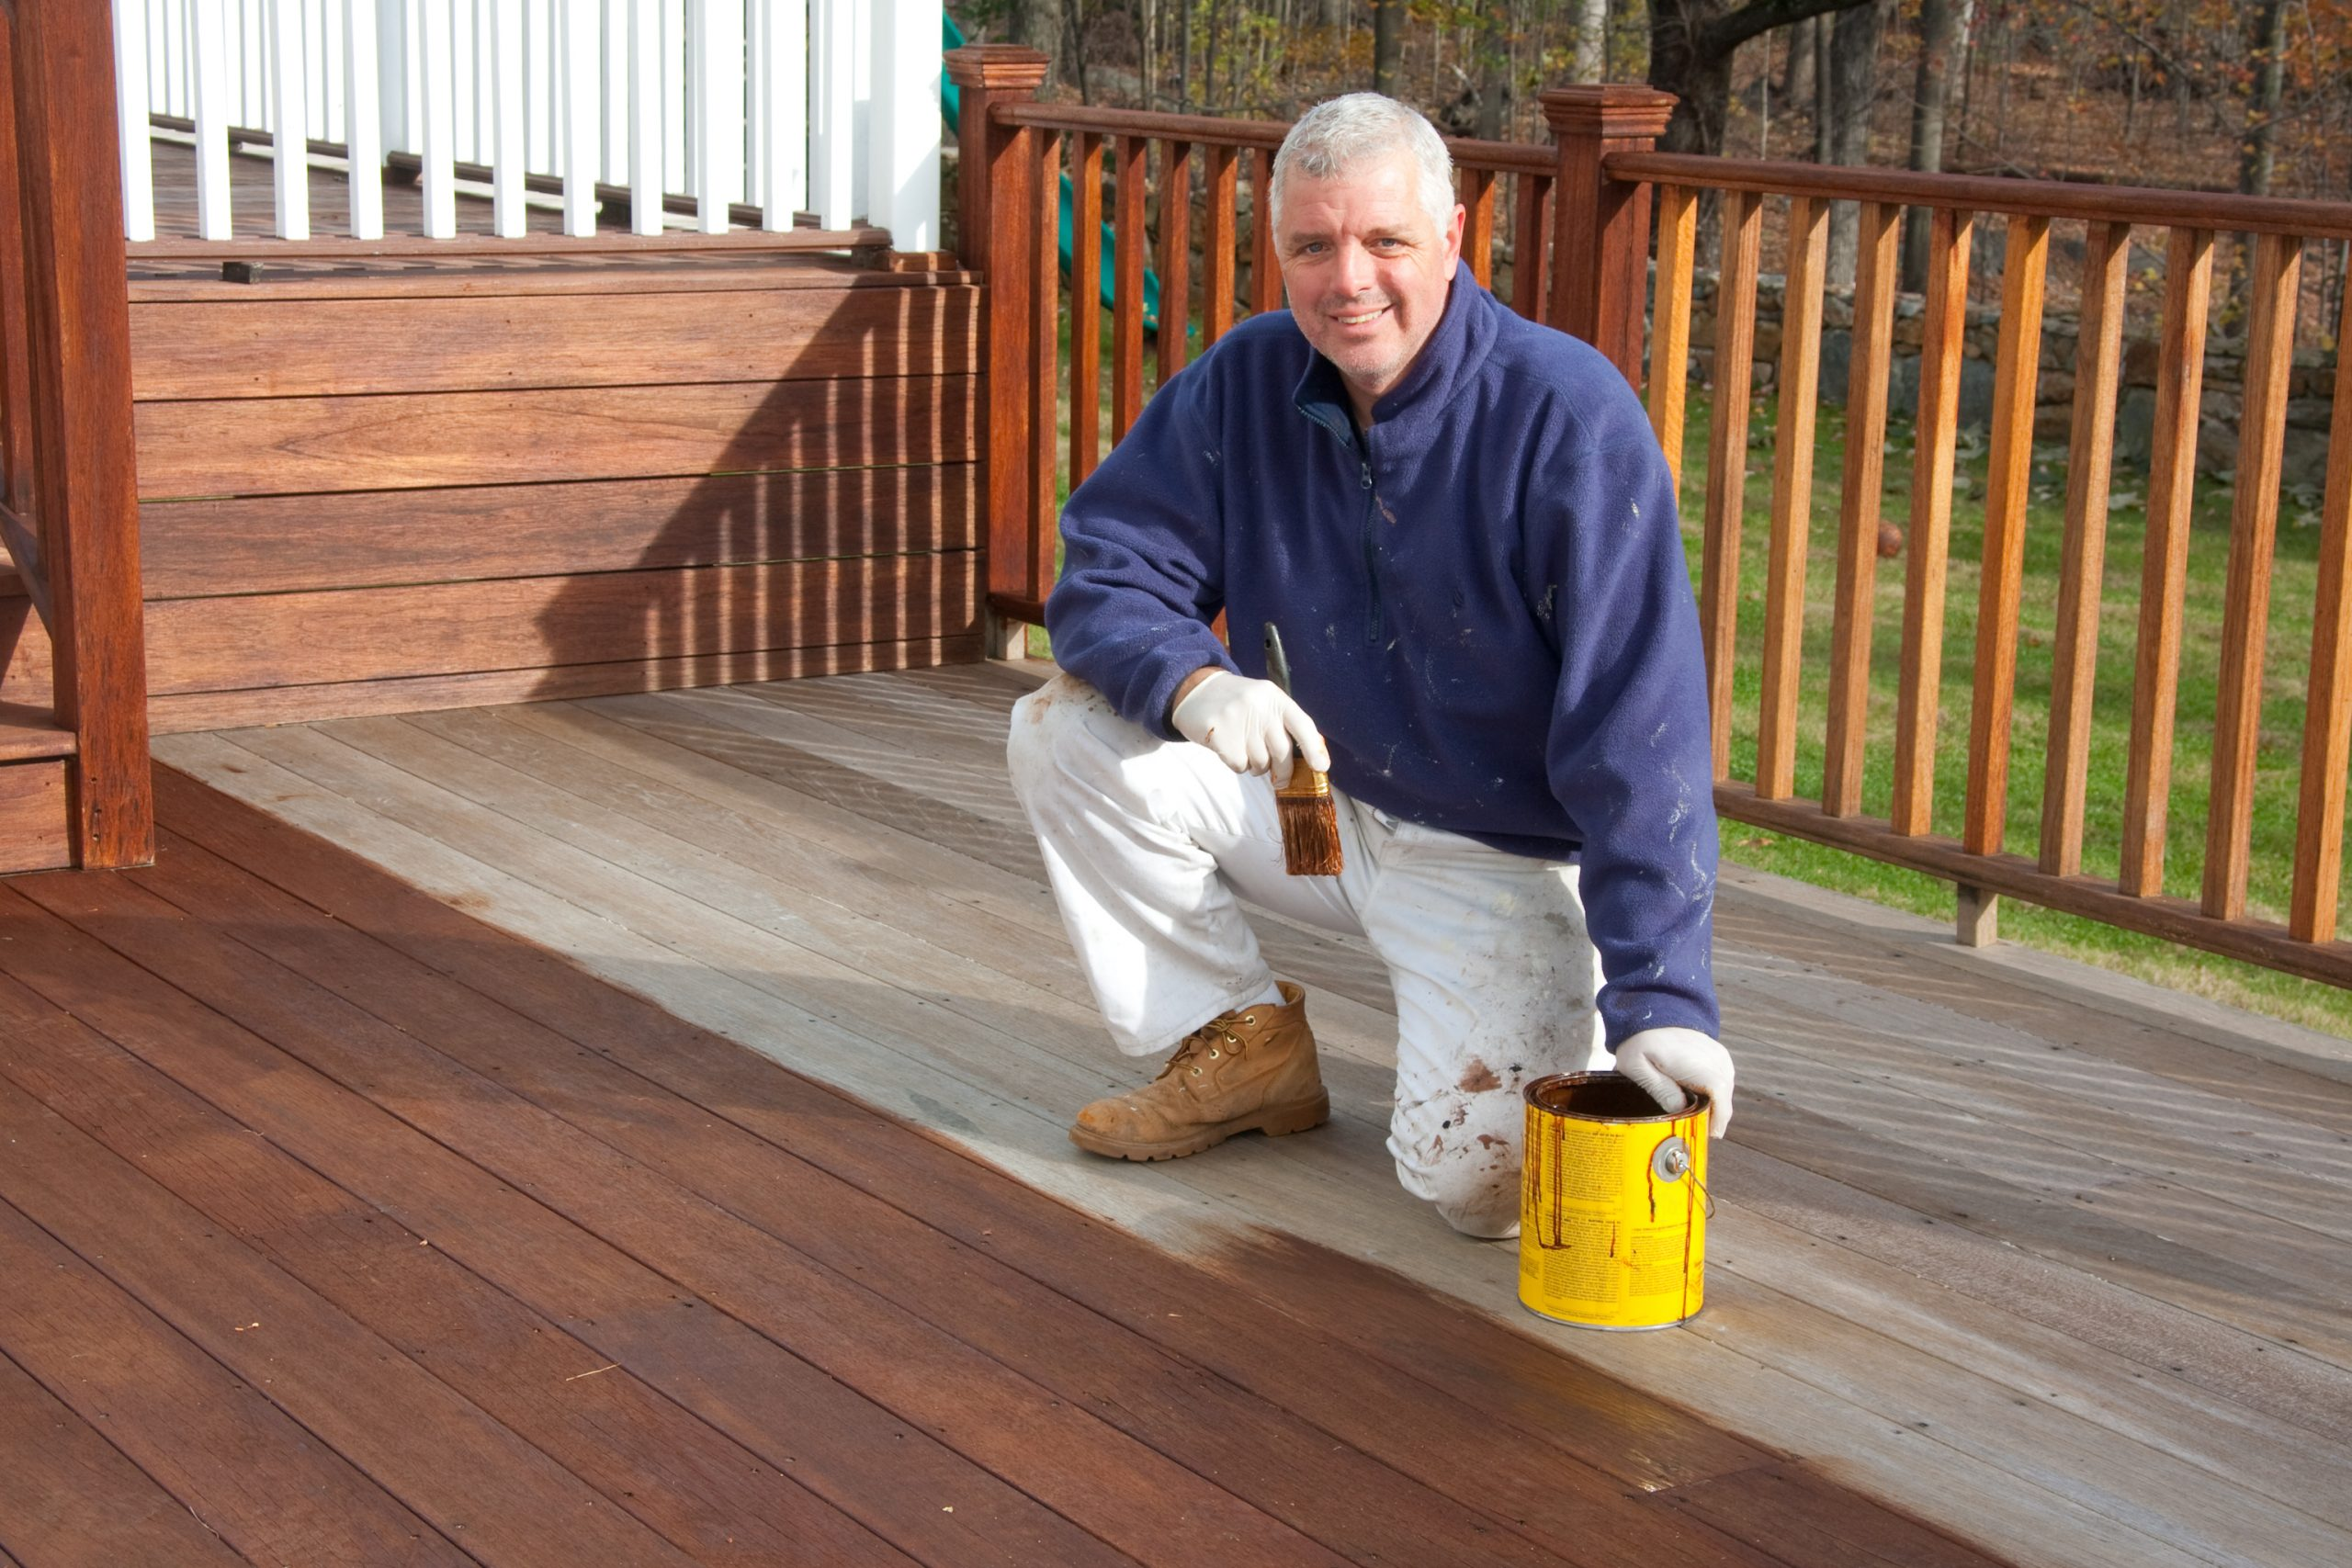 deck staining stain sealing sealed weather protection service quality lexington kentucky deck builder contractors company construction excellent